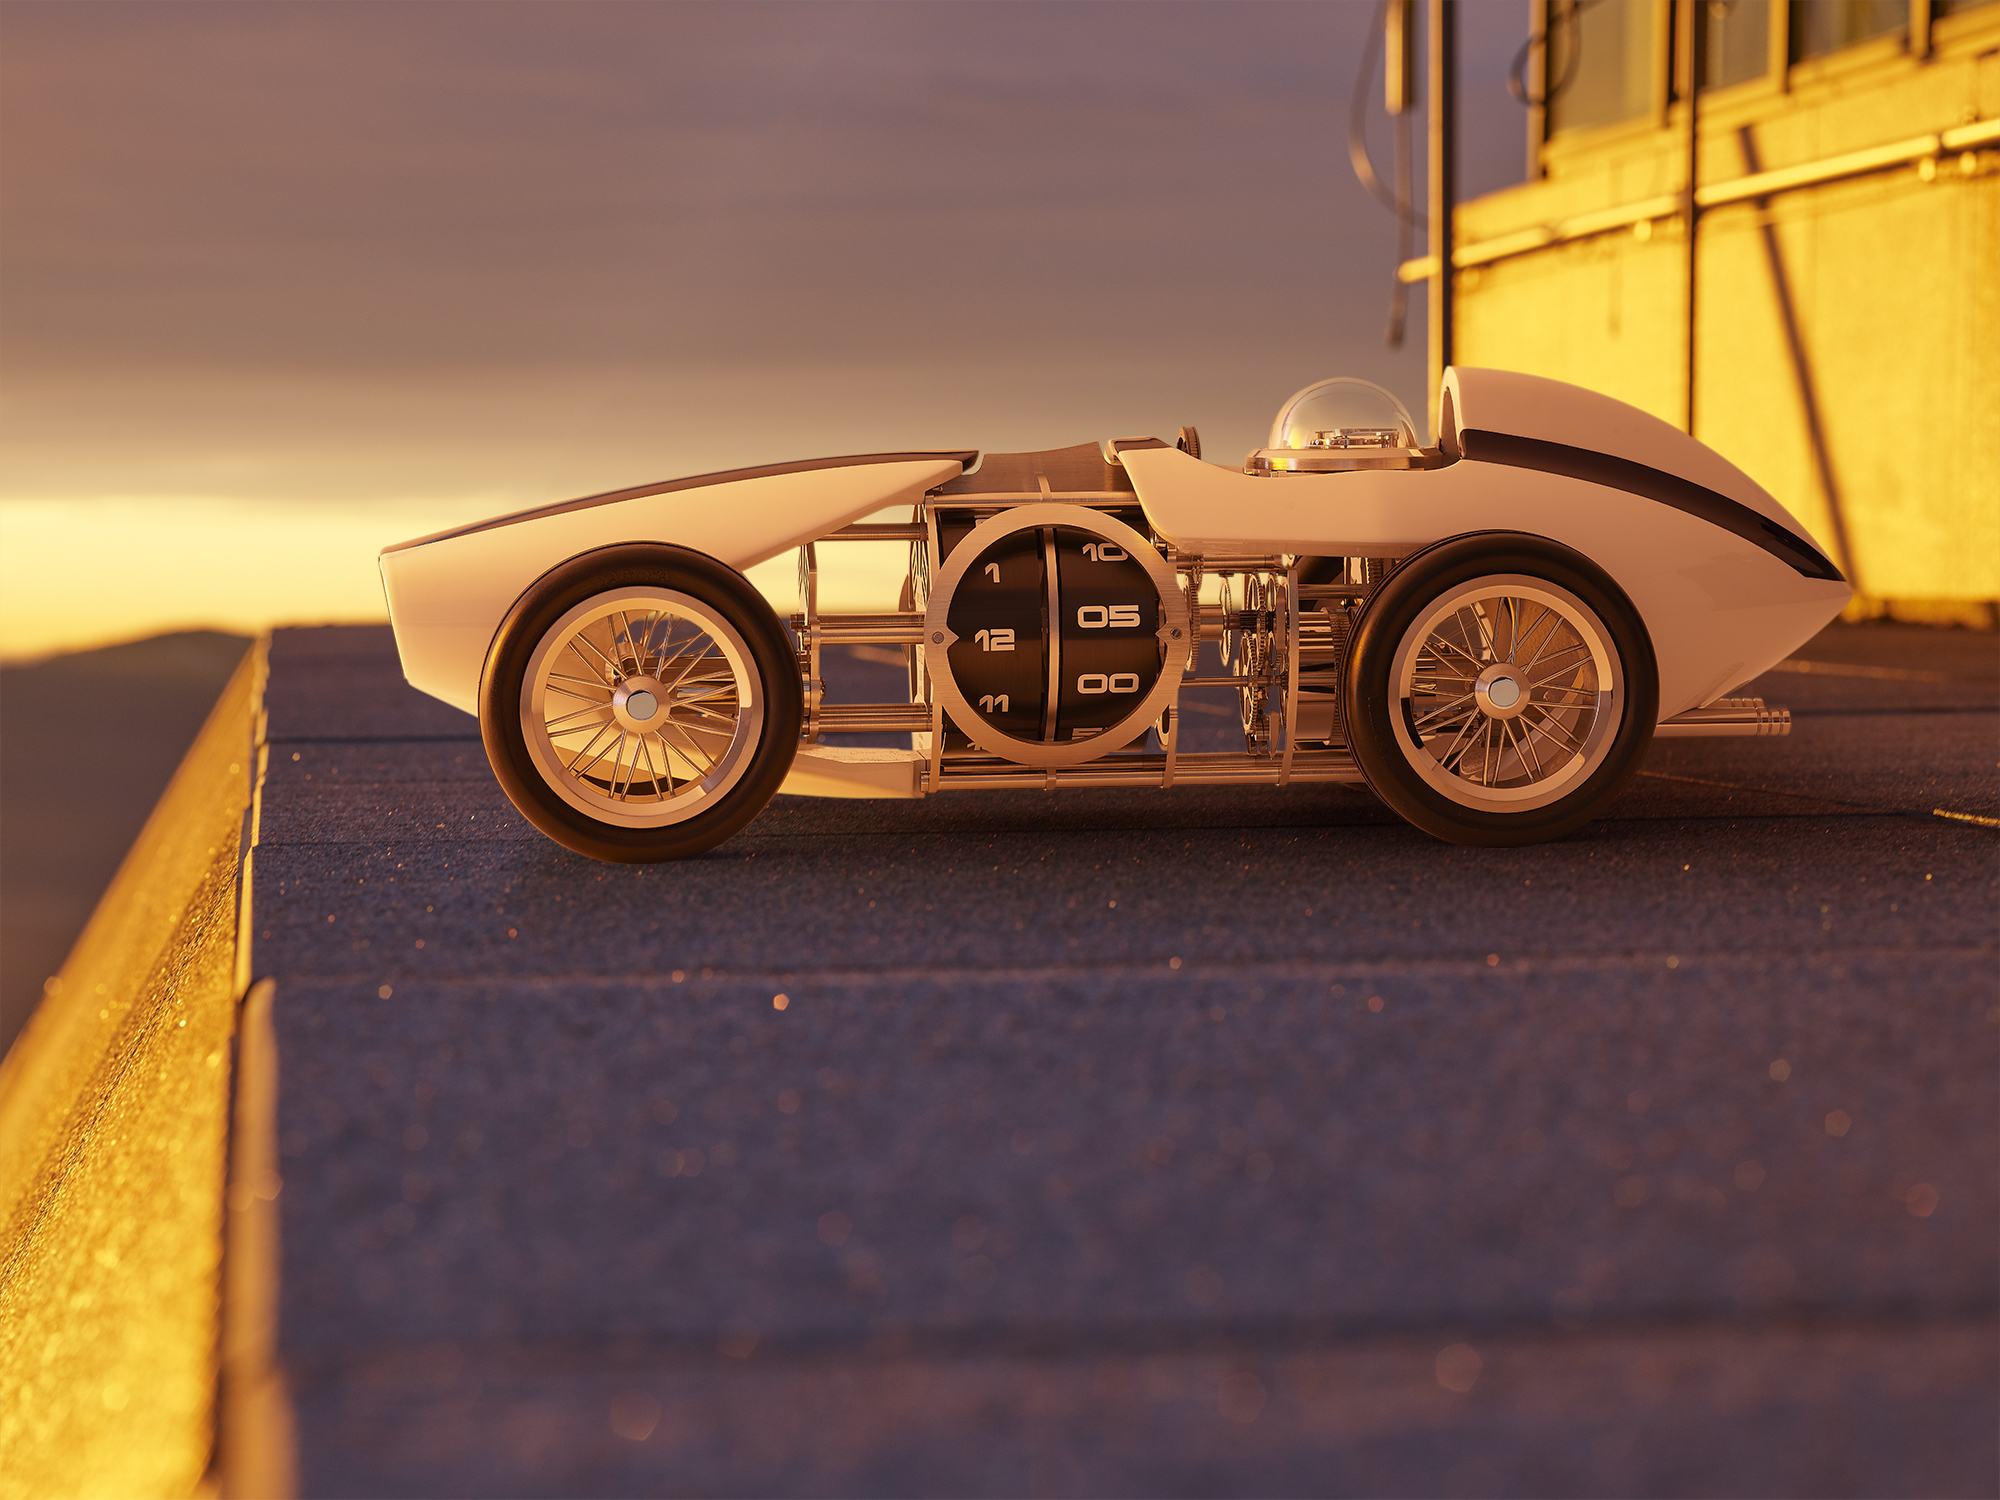 Final image of the speed car clock Time Fast D8,  here  the high resolution image